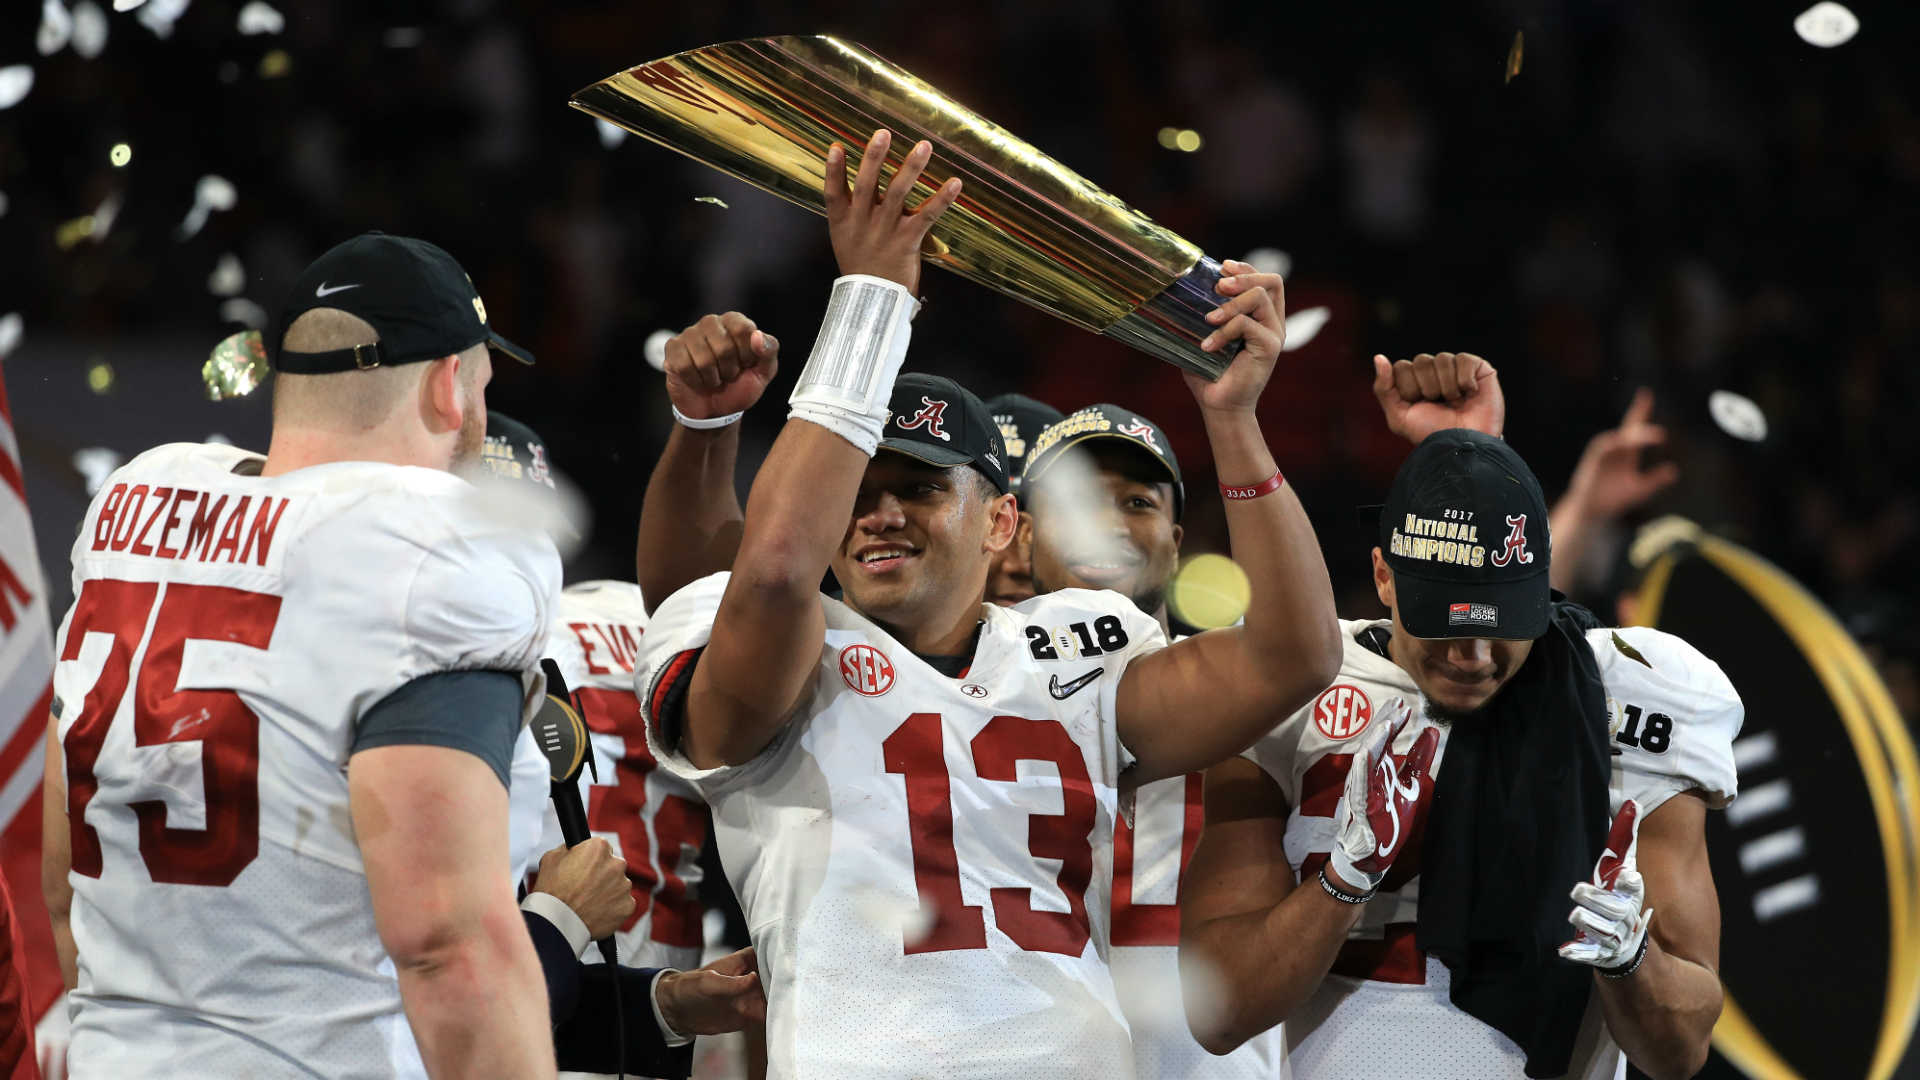 Alabama wins 2017-18 CFP National Championship